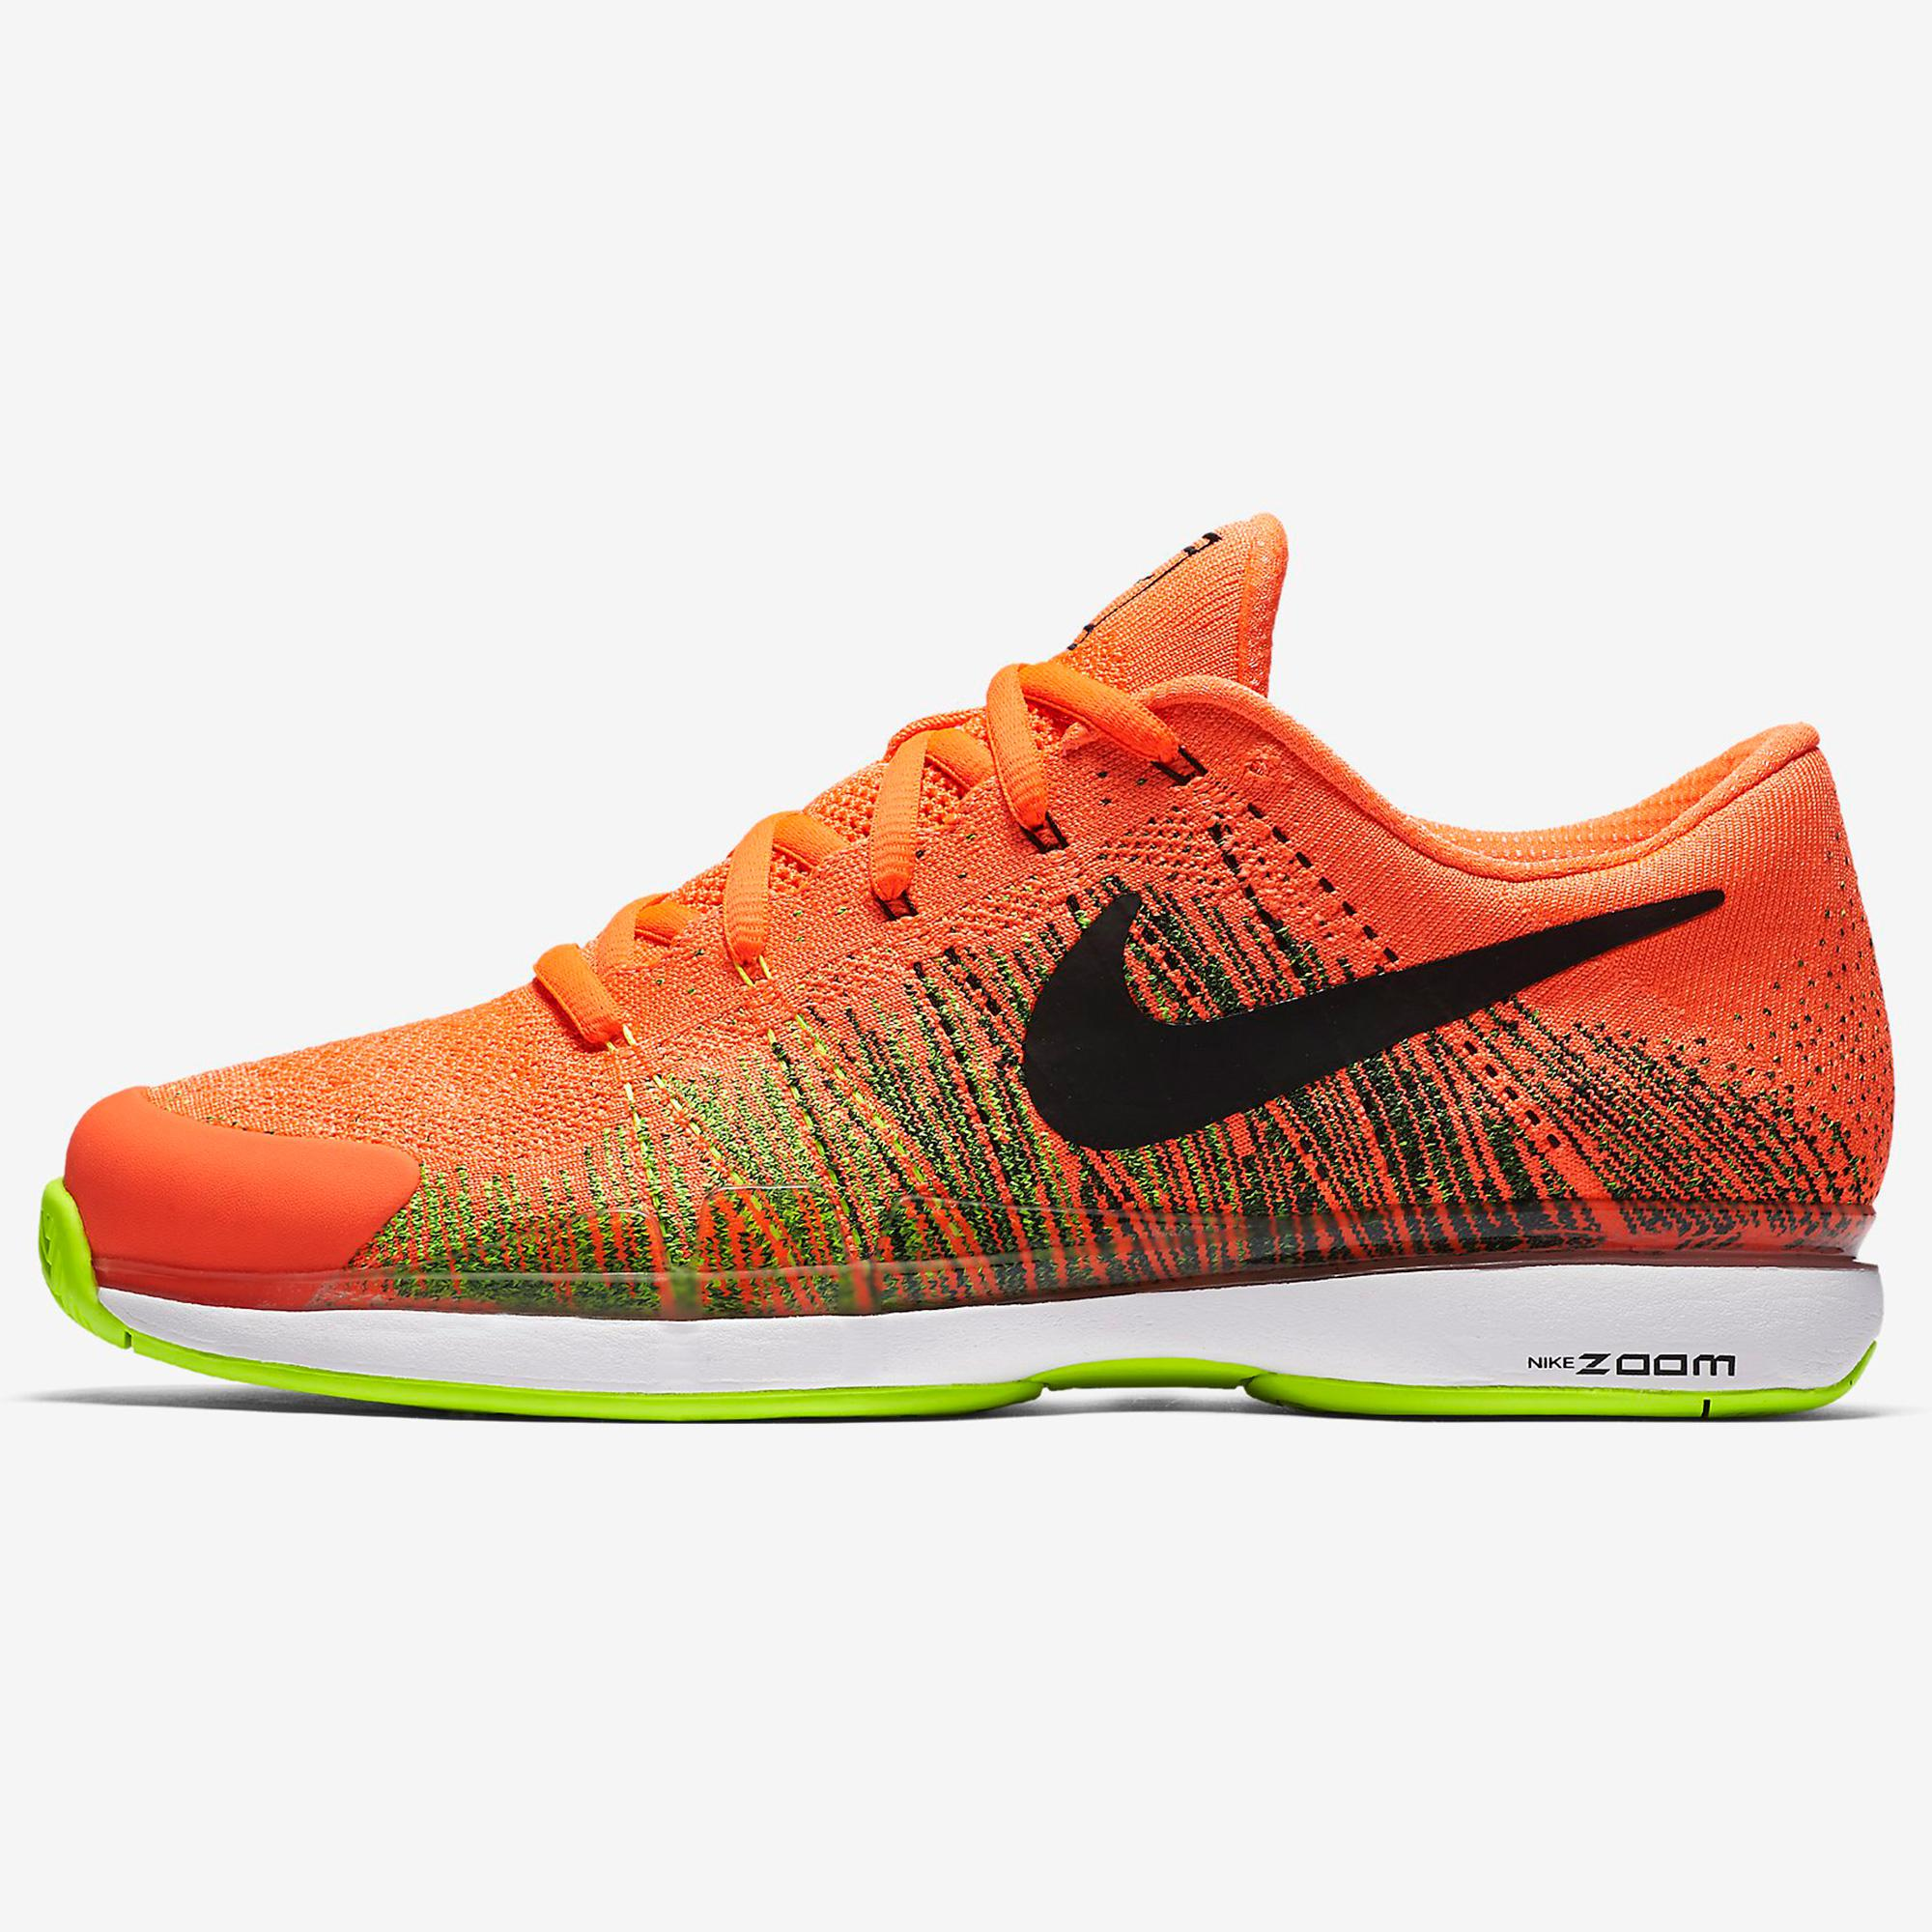 824ba528c3e0d Nike Mens Zoom Vapor 9.5 Flyknit Tennis Shoes - Hyper Orange -  Tennisnuts.com